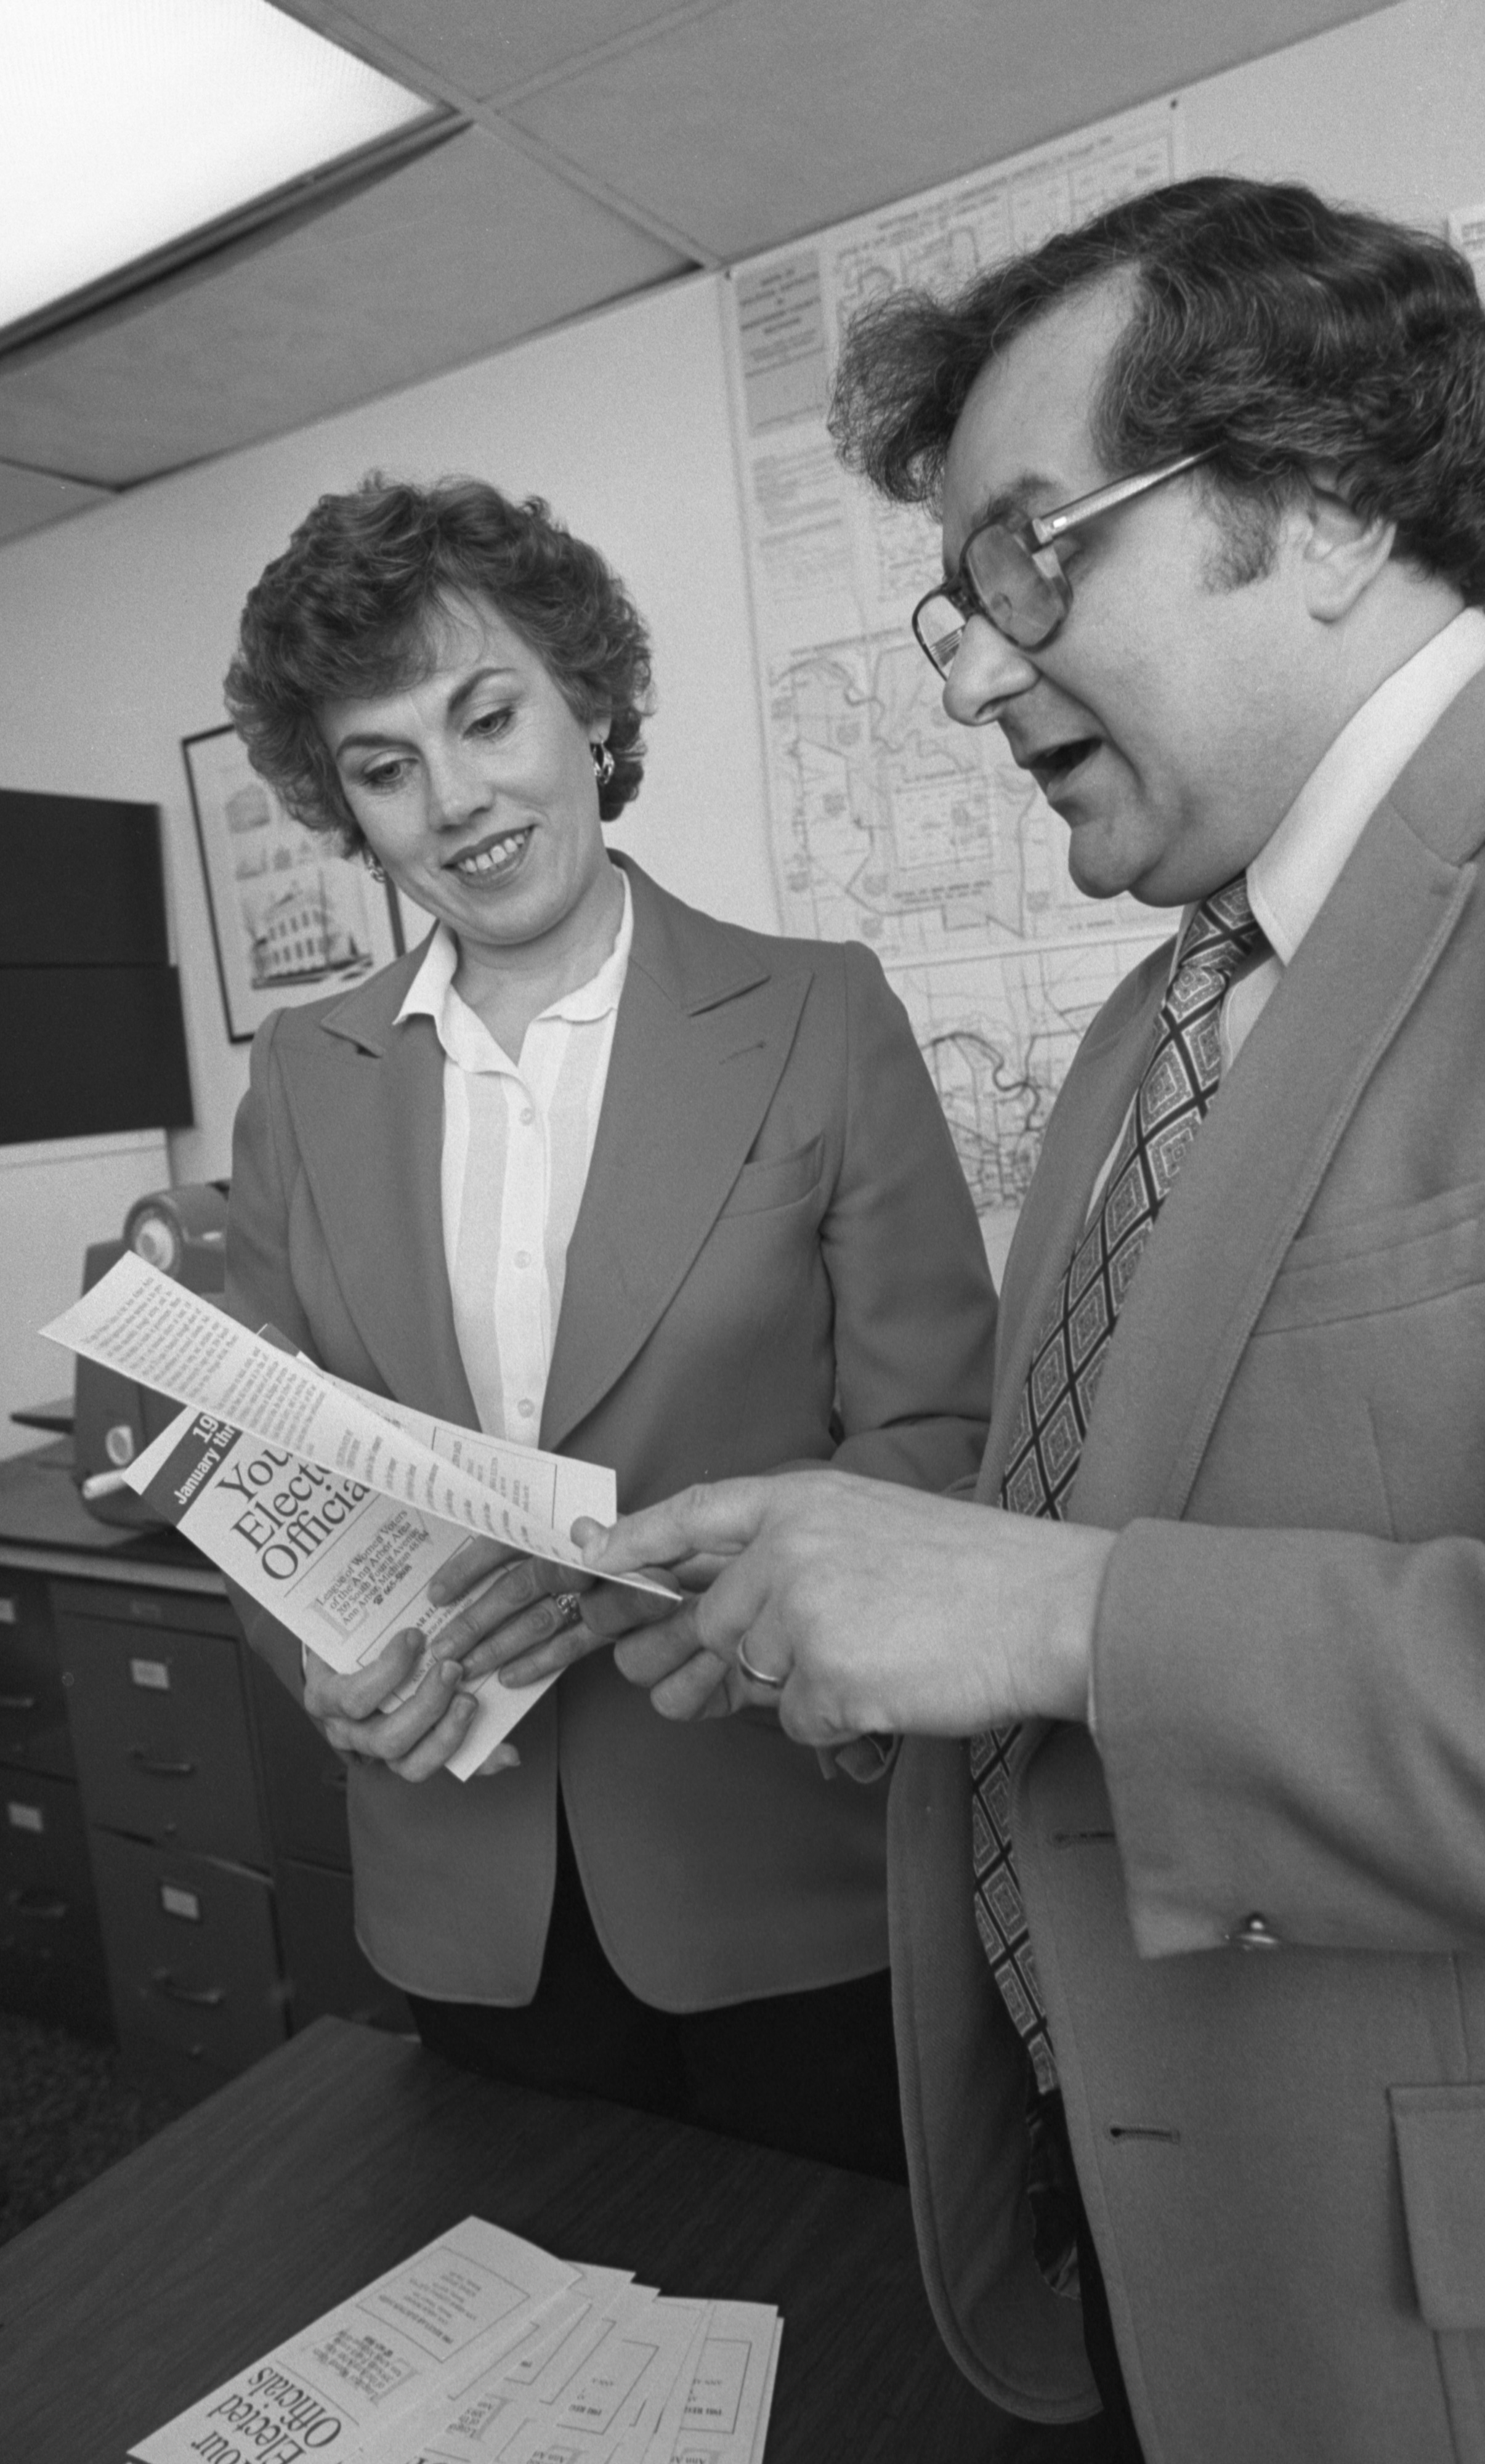 Gloria Frankena & James Frenza With The League Of Women Voters Publication 'Your Elected Officials', January 1981 image